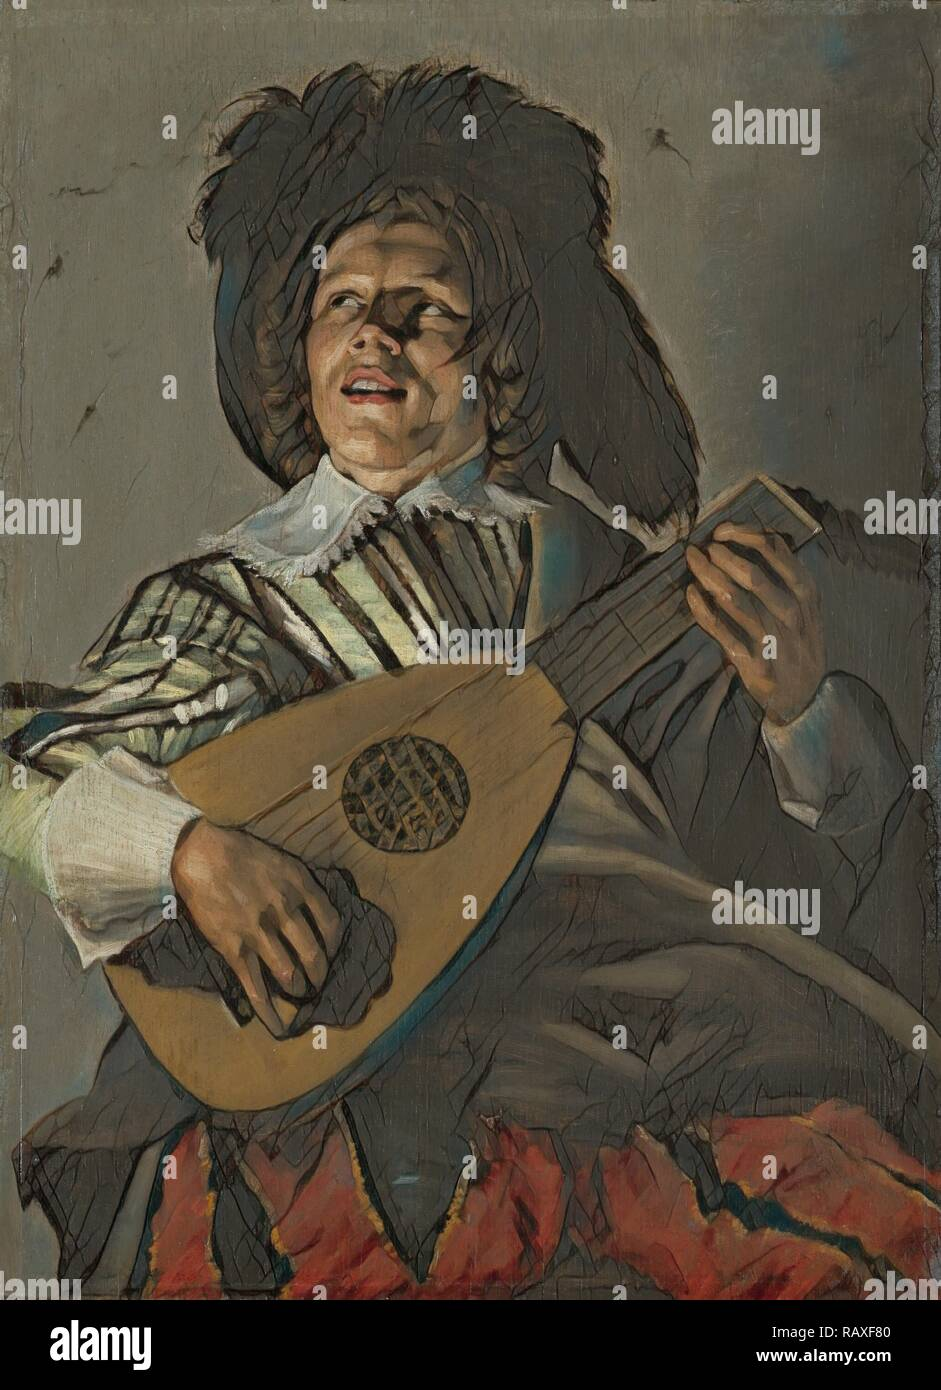 The Serenade, Judith Leyster, 1629. Reimagined by Gibon. Classic art with a modern twist reimagined - Stock Image